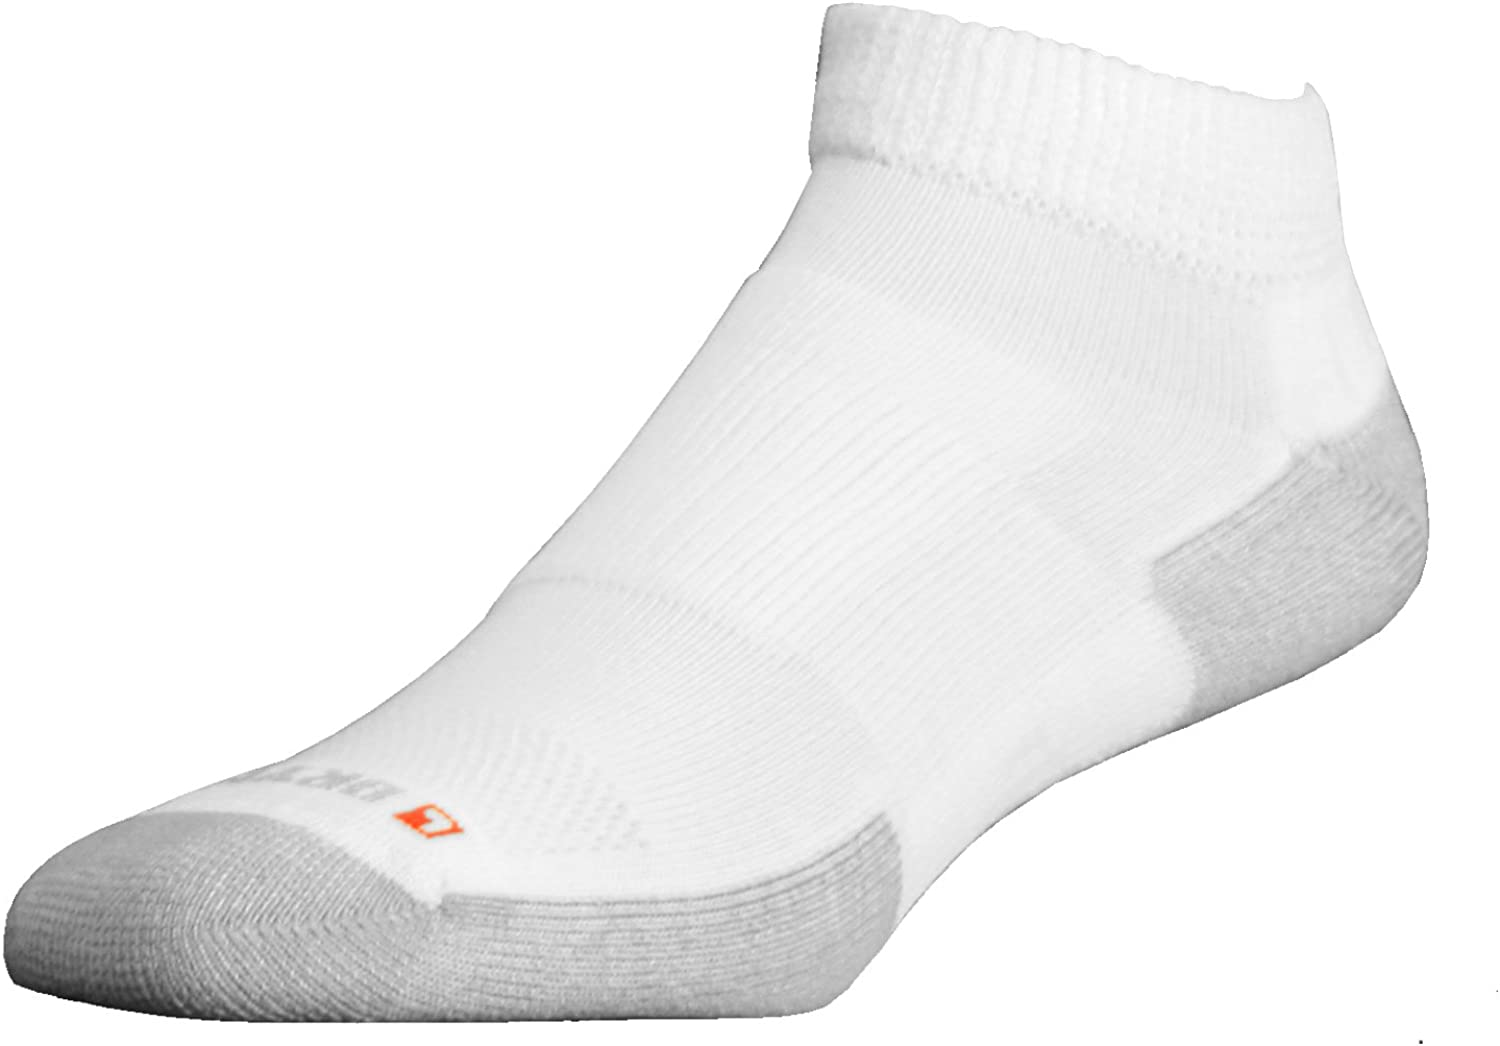 Drymax Walking Mini Crew Socks